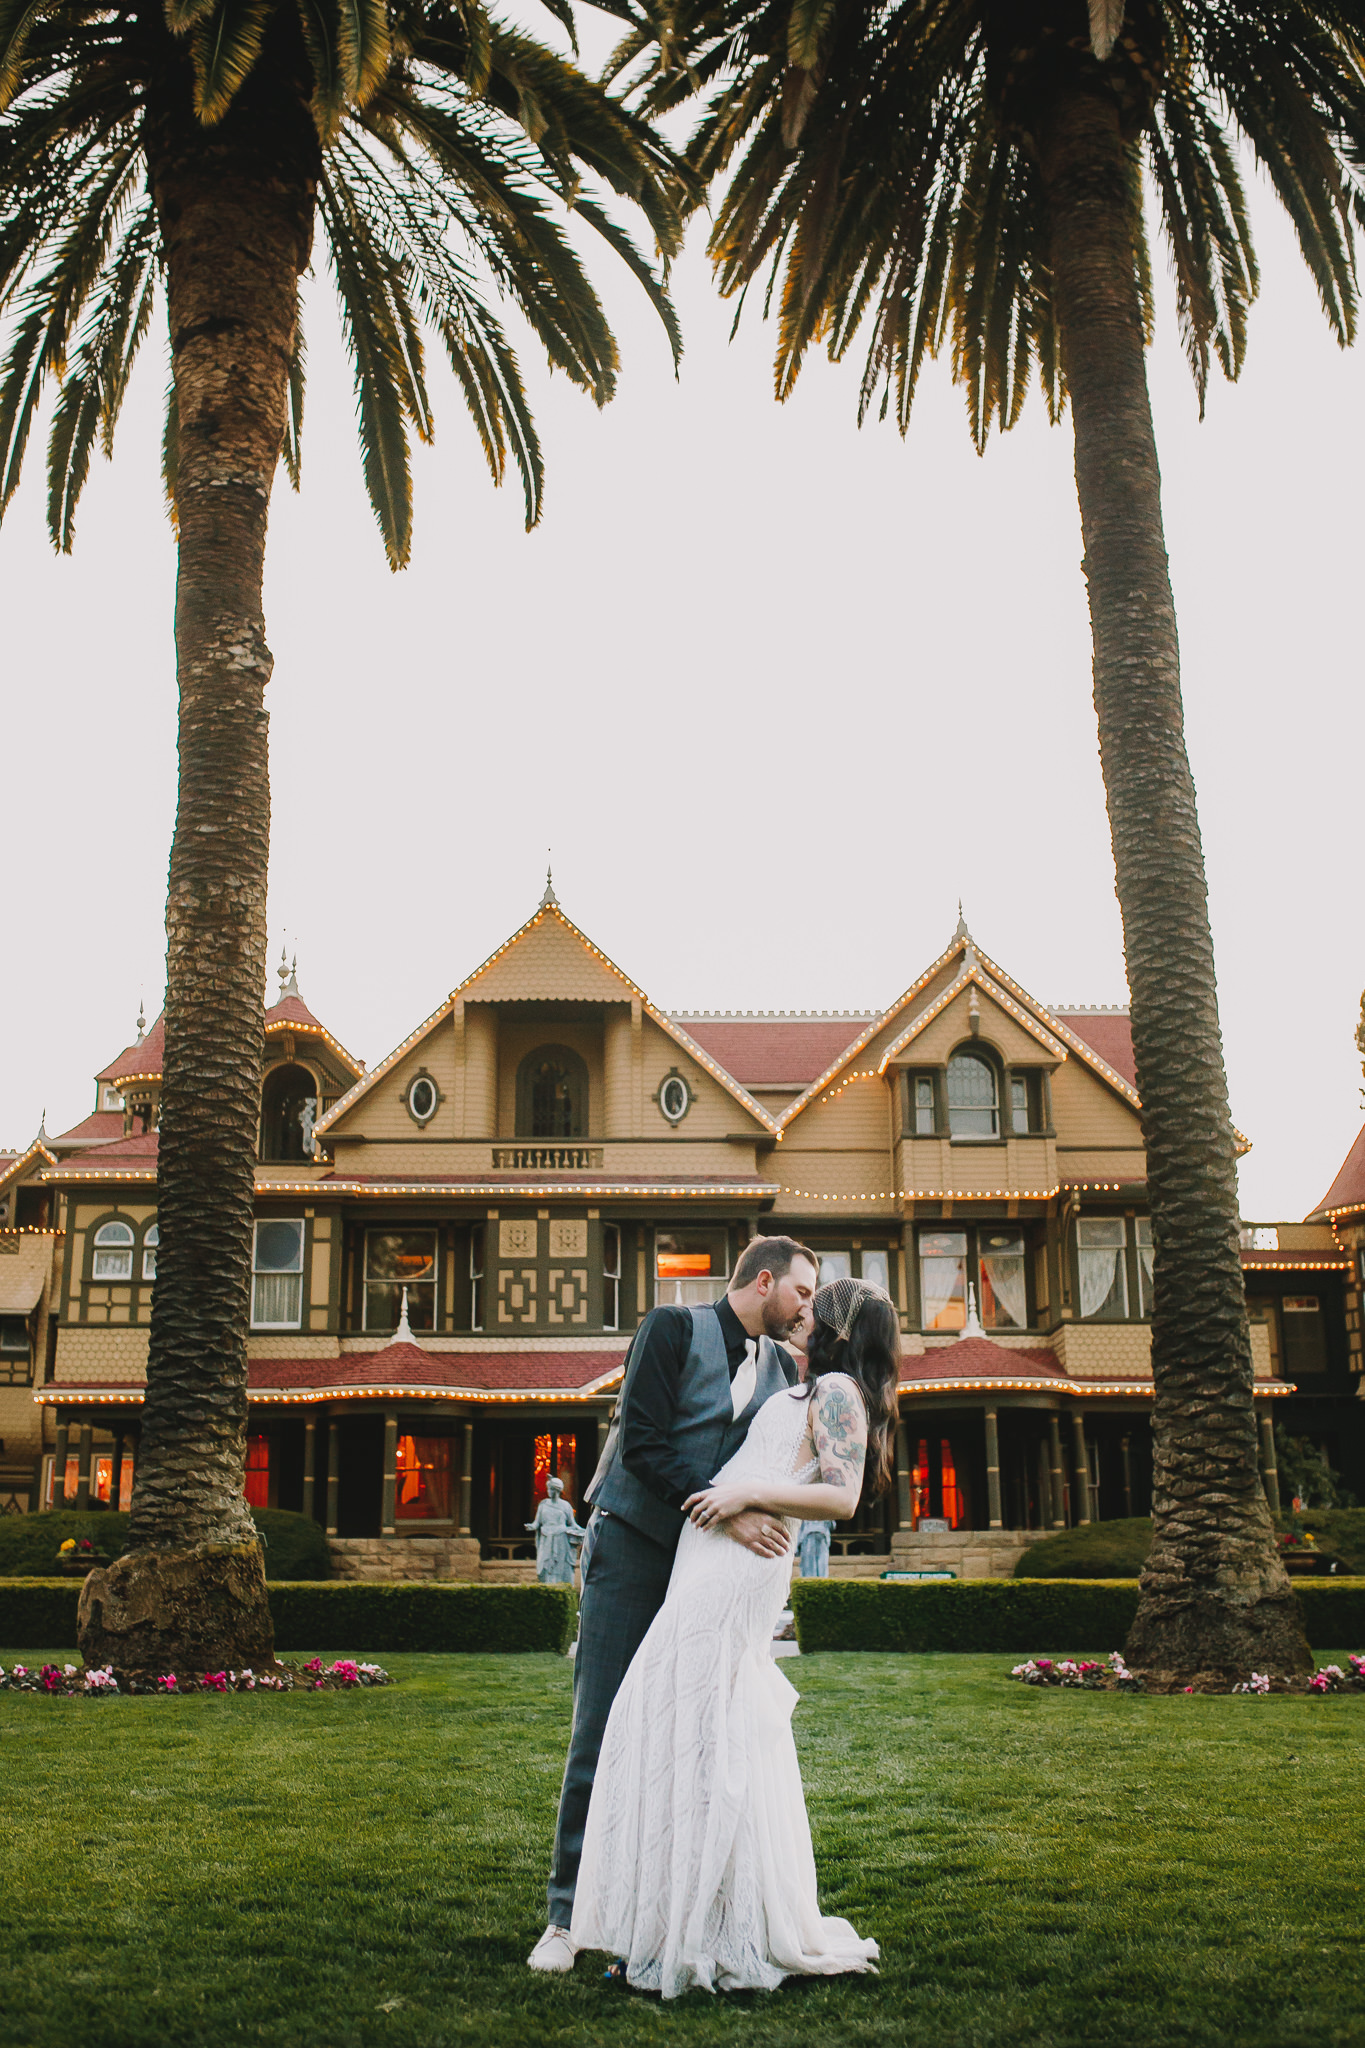 Archer Inspired Photography Sara and Aaron Winchester Mystery House NorCal San Jose California Wedding Photographer-510.jpg